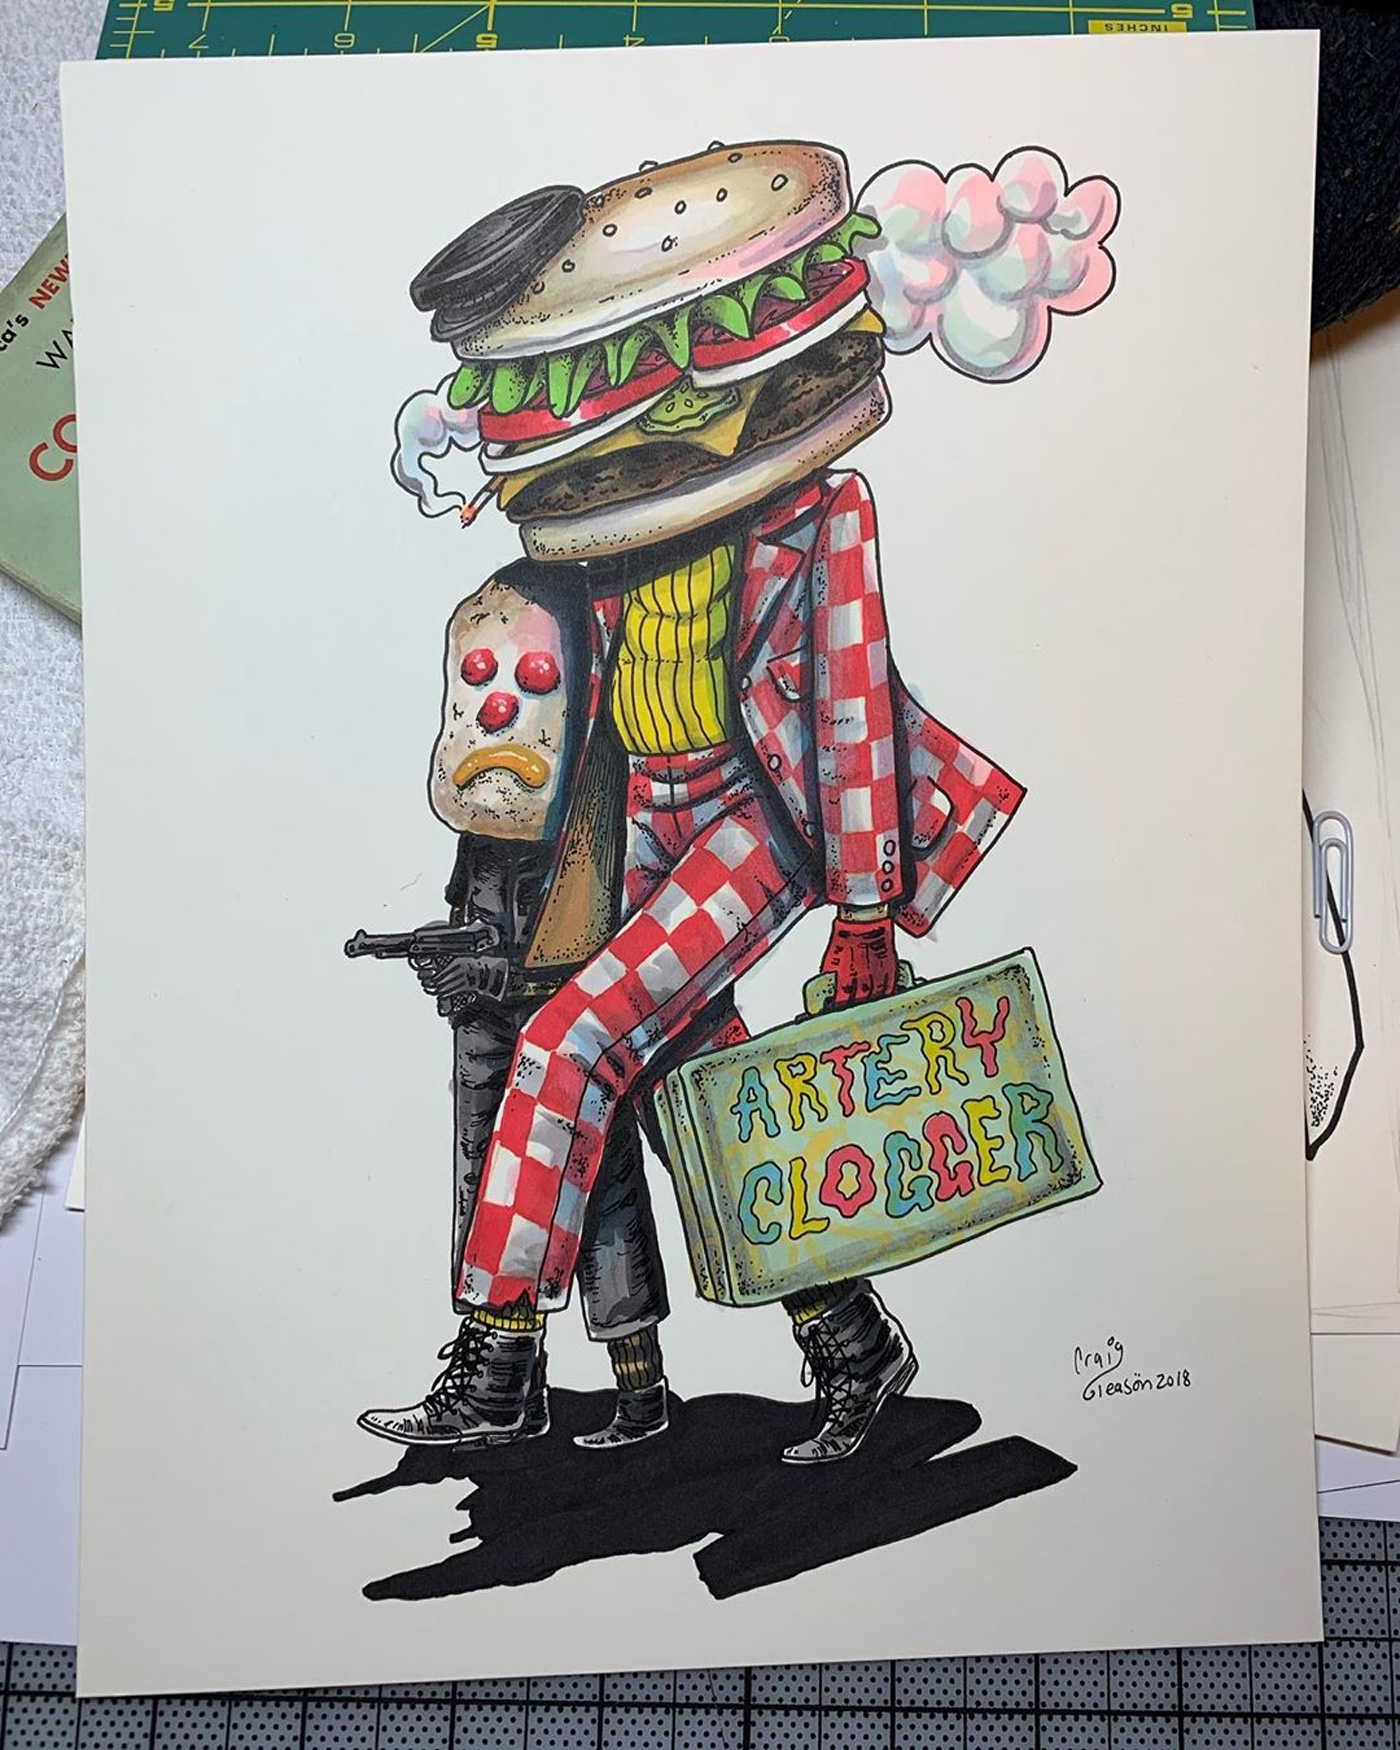 Illustration of Burger Monster With Luggage Hoarded Artery Clogger